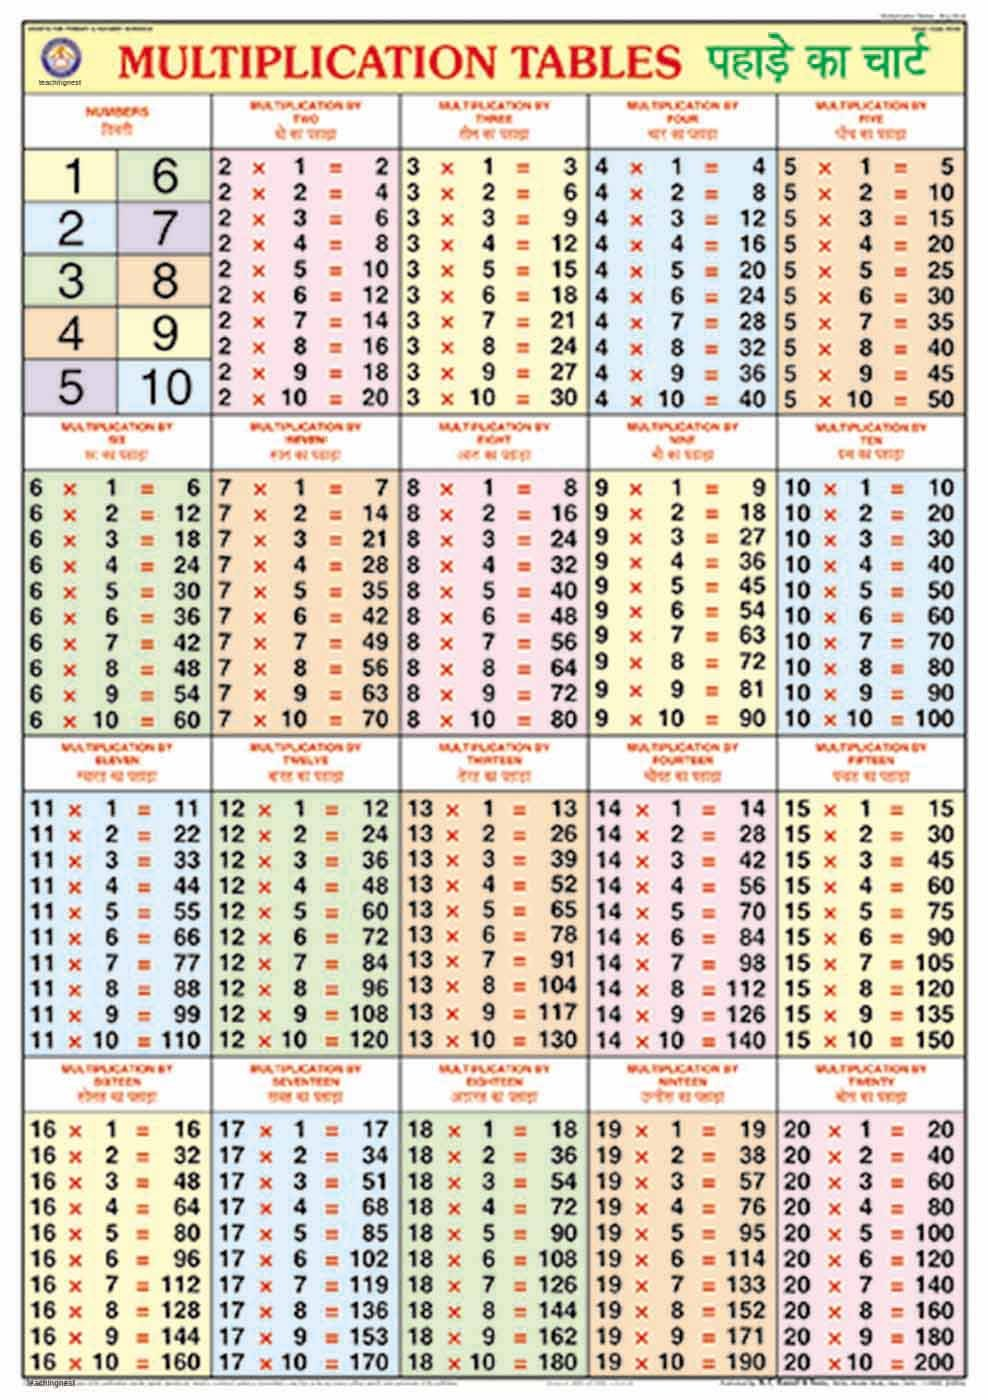 Buy multiplication table chart 70x100cm book online at low buy multiplication table chart 70x100cm book online at low prices in india multiplication table chart 70x100cm reviews ratings amazon gamestrikefo Gallery